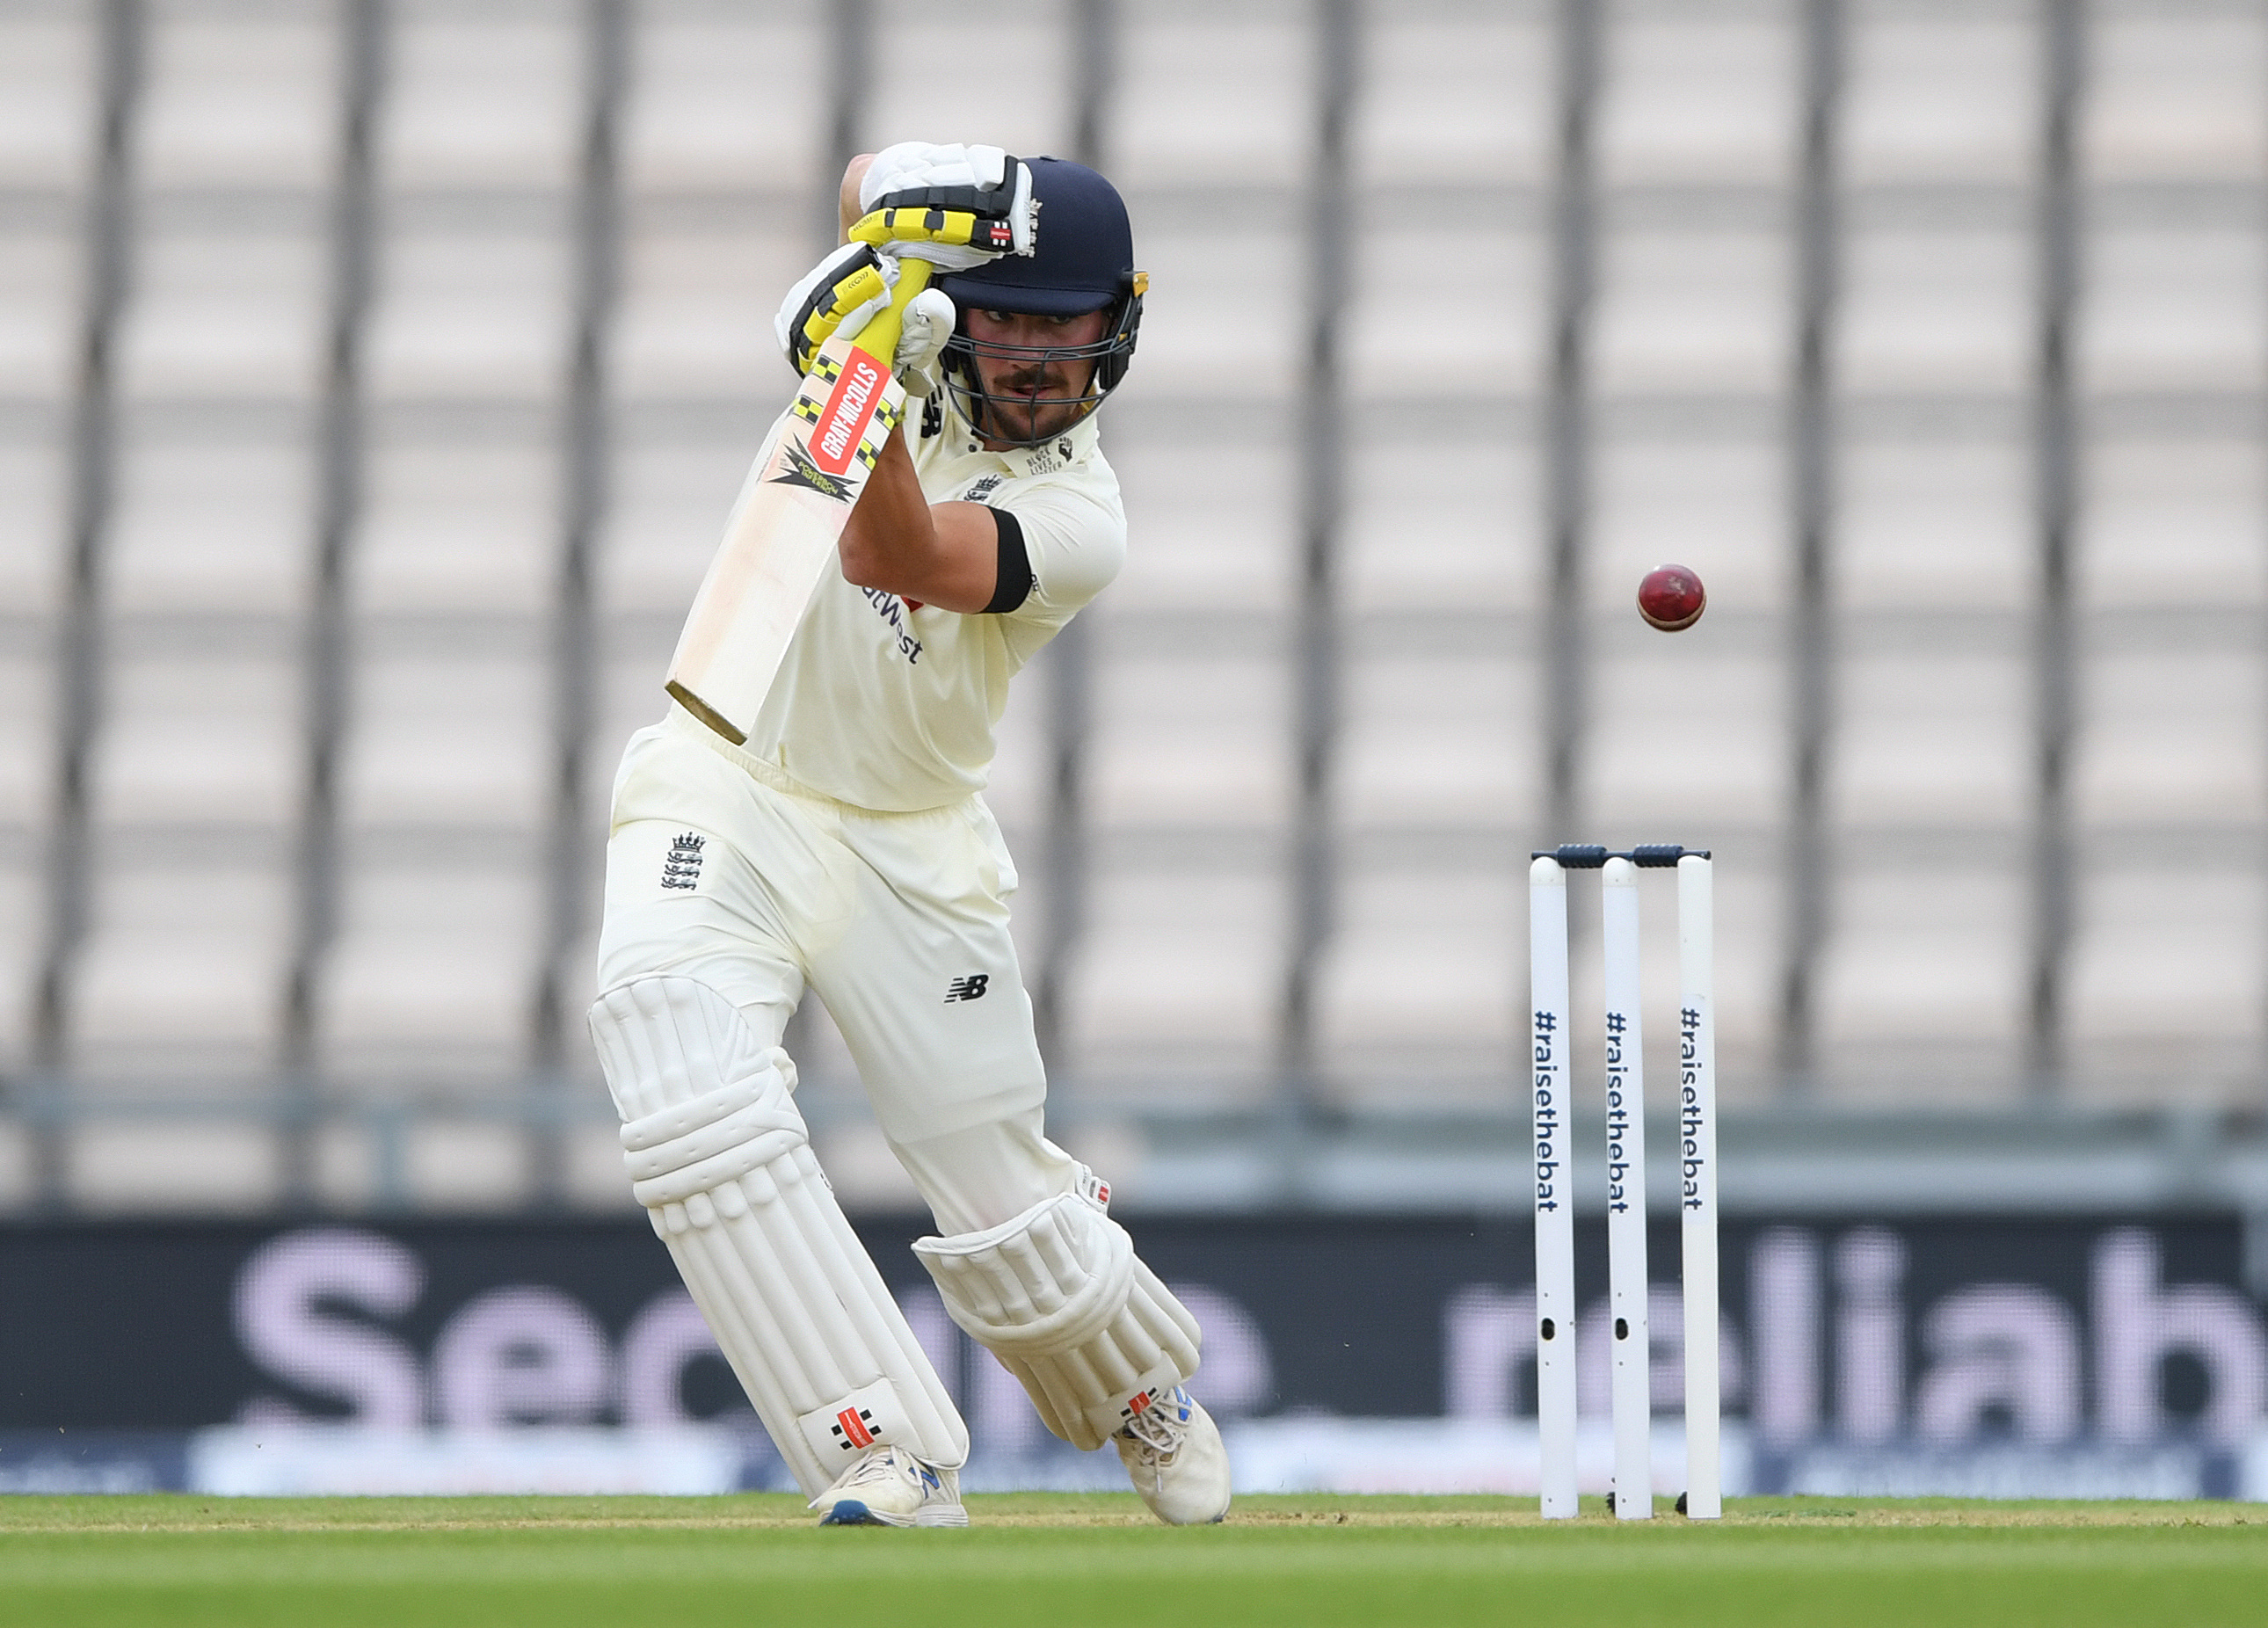 England's Rory Burns in action, as play resumes behind closed doors following the outbreak of the coronavirus disease (COVID-19). Photo: Reuters